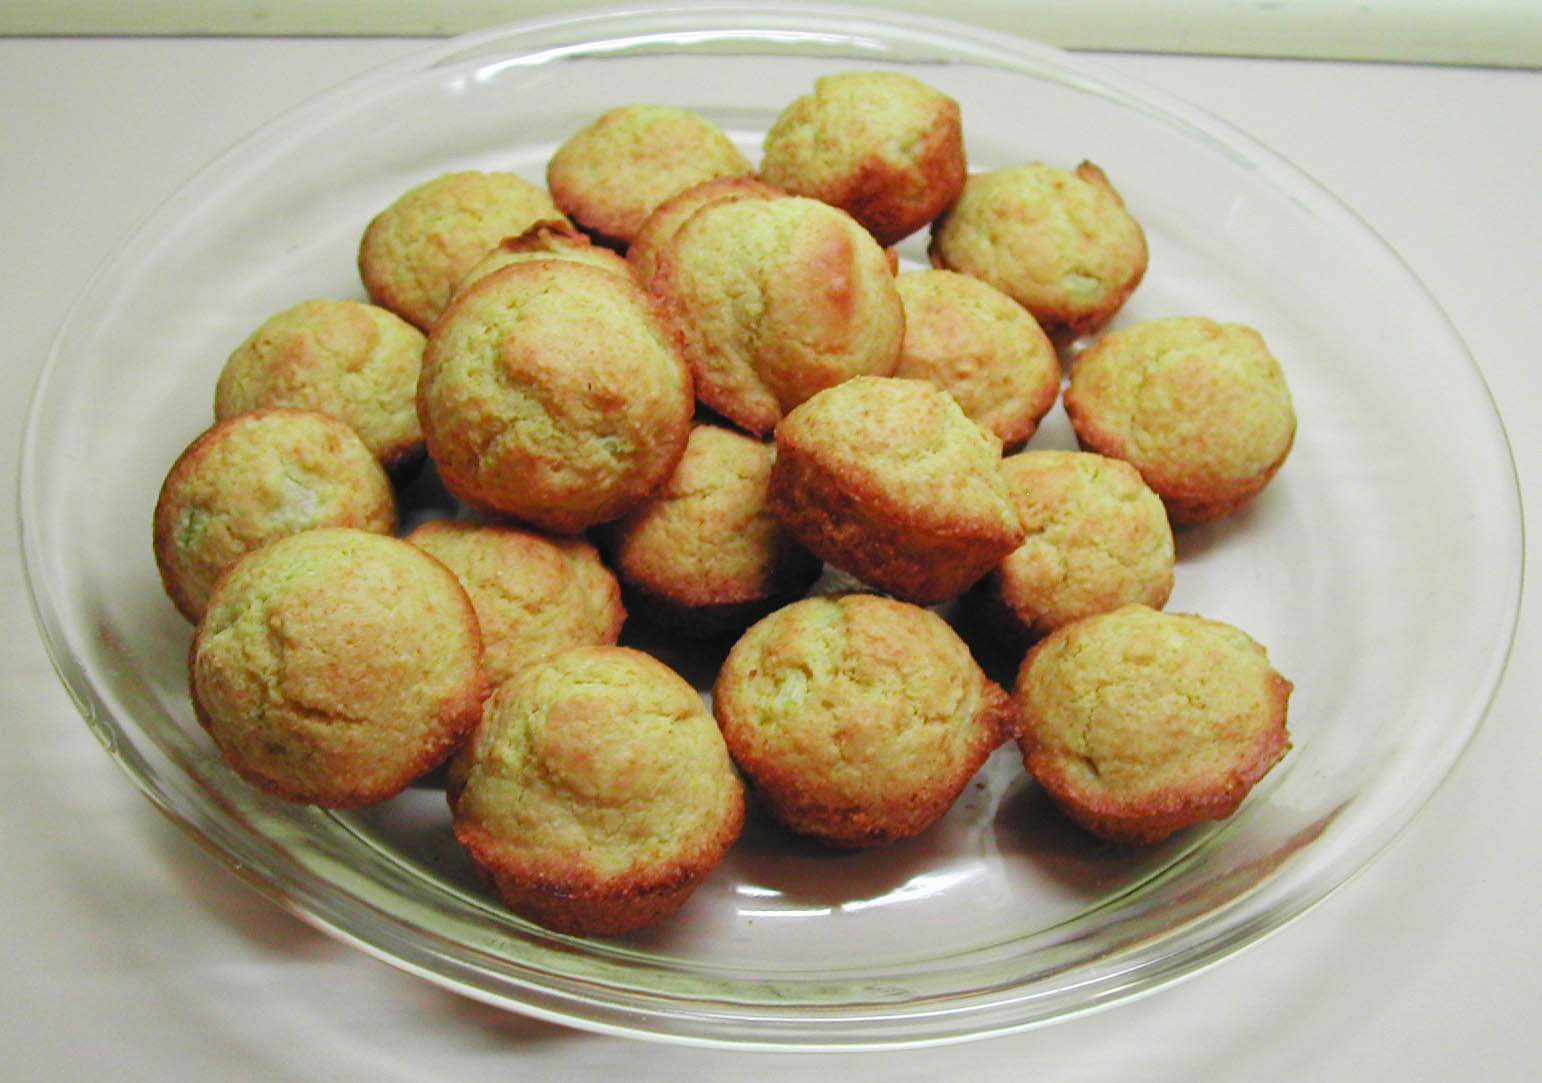 The Iowa Housewife Baked Hush Puppies